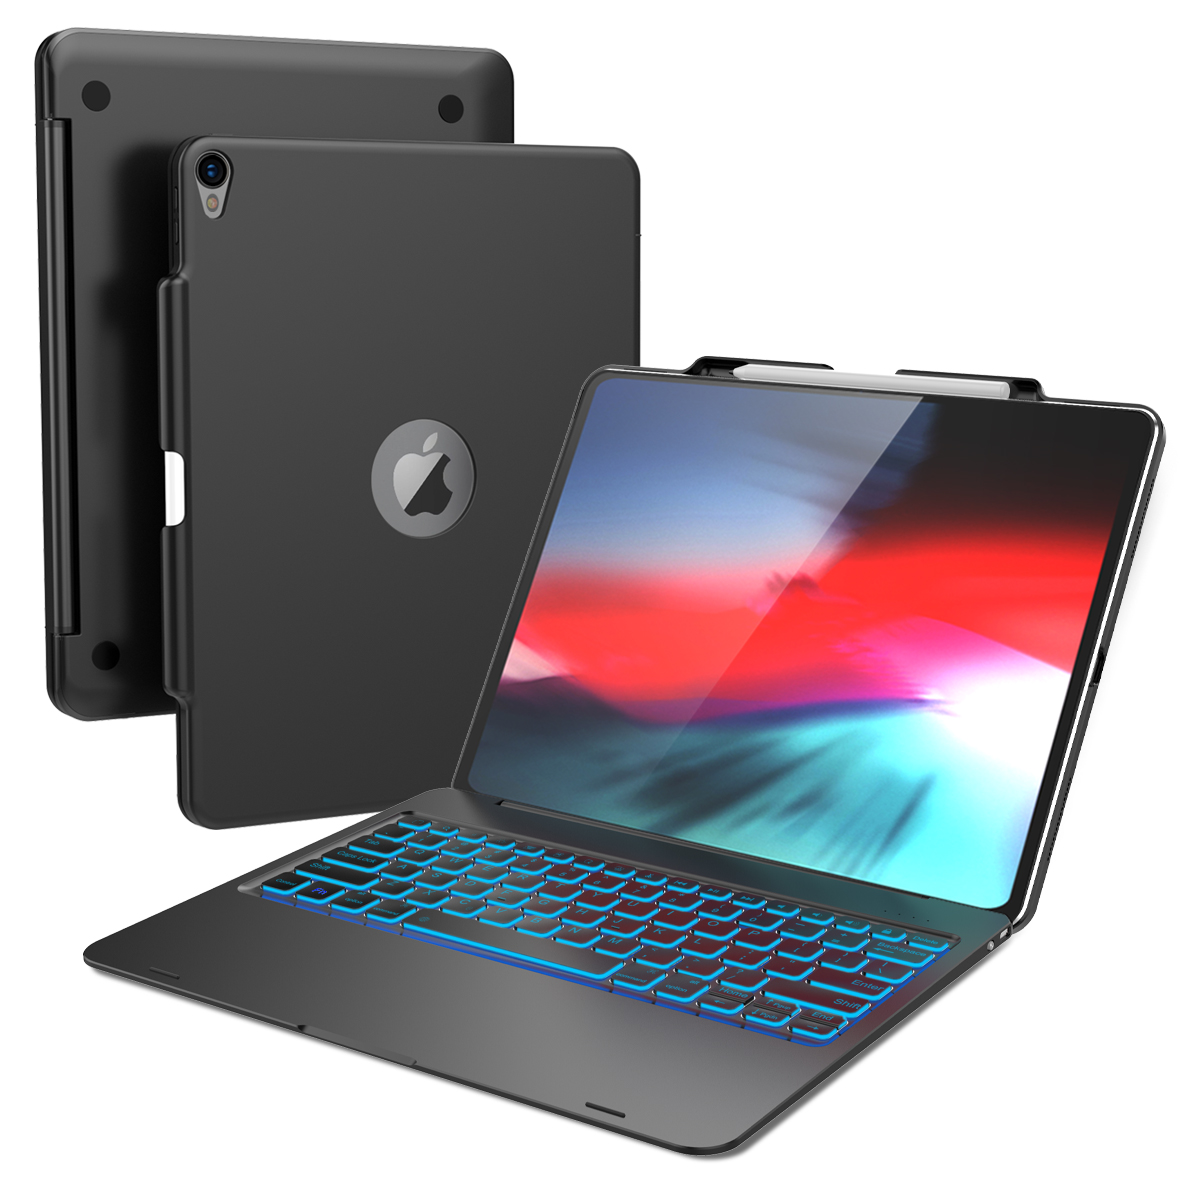 Para o iPad 12.9 Pro 2018 Caso Laptop Projeto 7 Cores Backlight EUA Tampa Do Teclado Bluetooth Para iPad 12.9 Pro Polegada 2018 Caso Estande